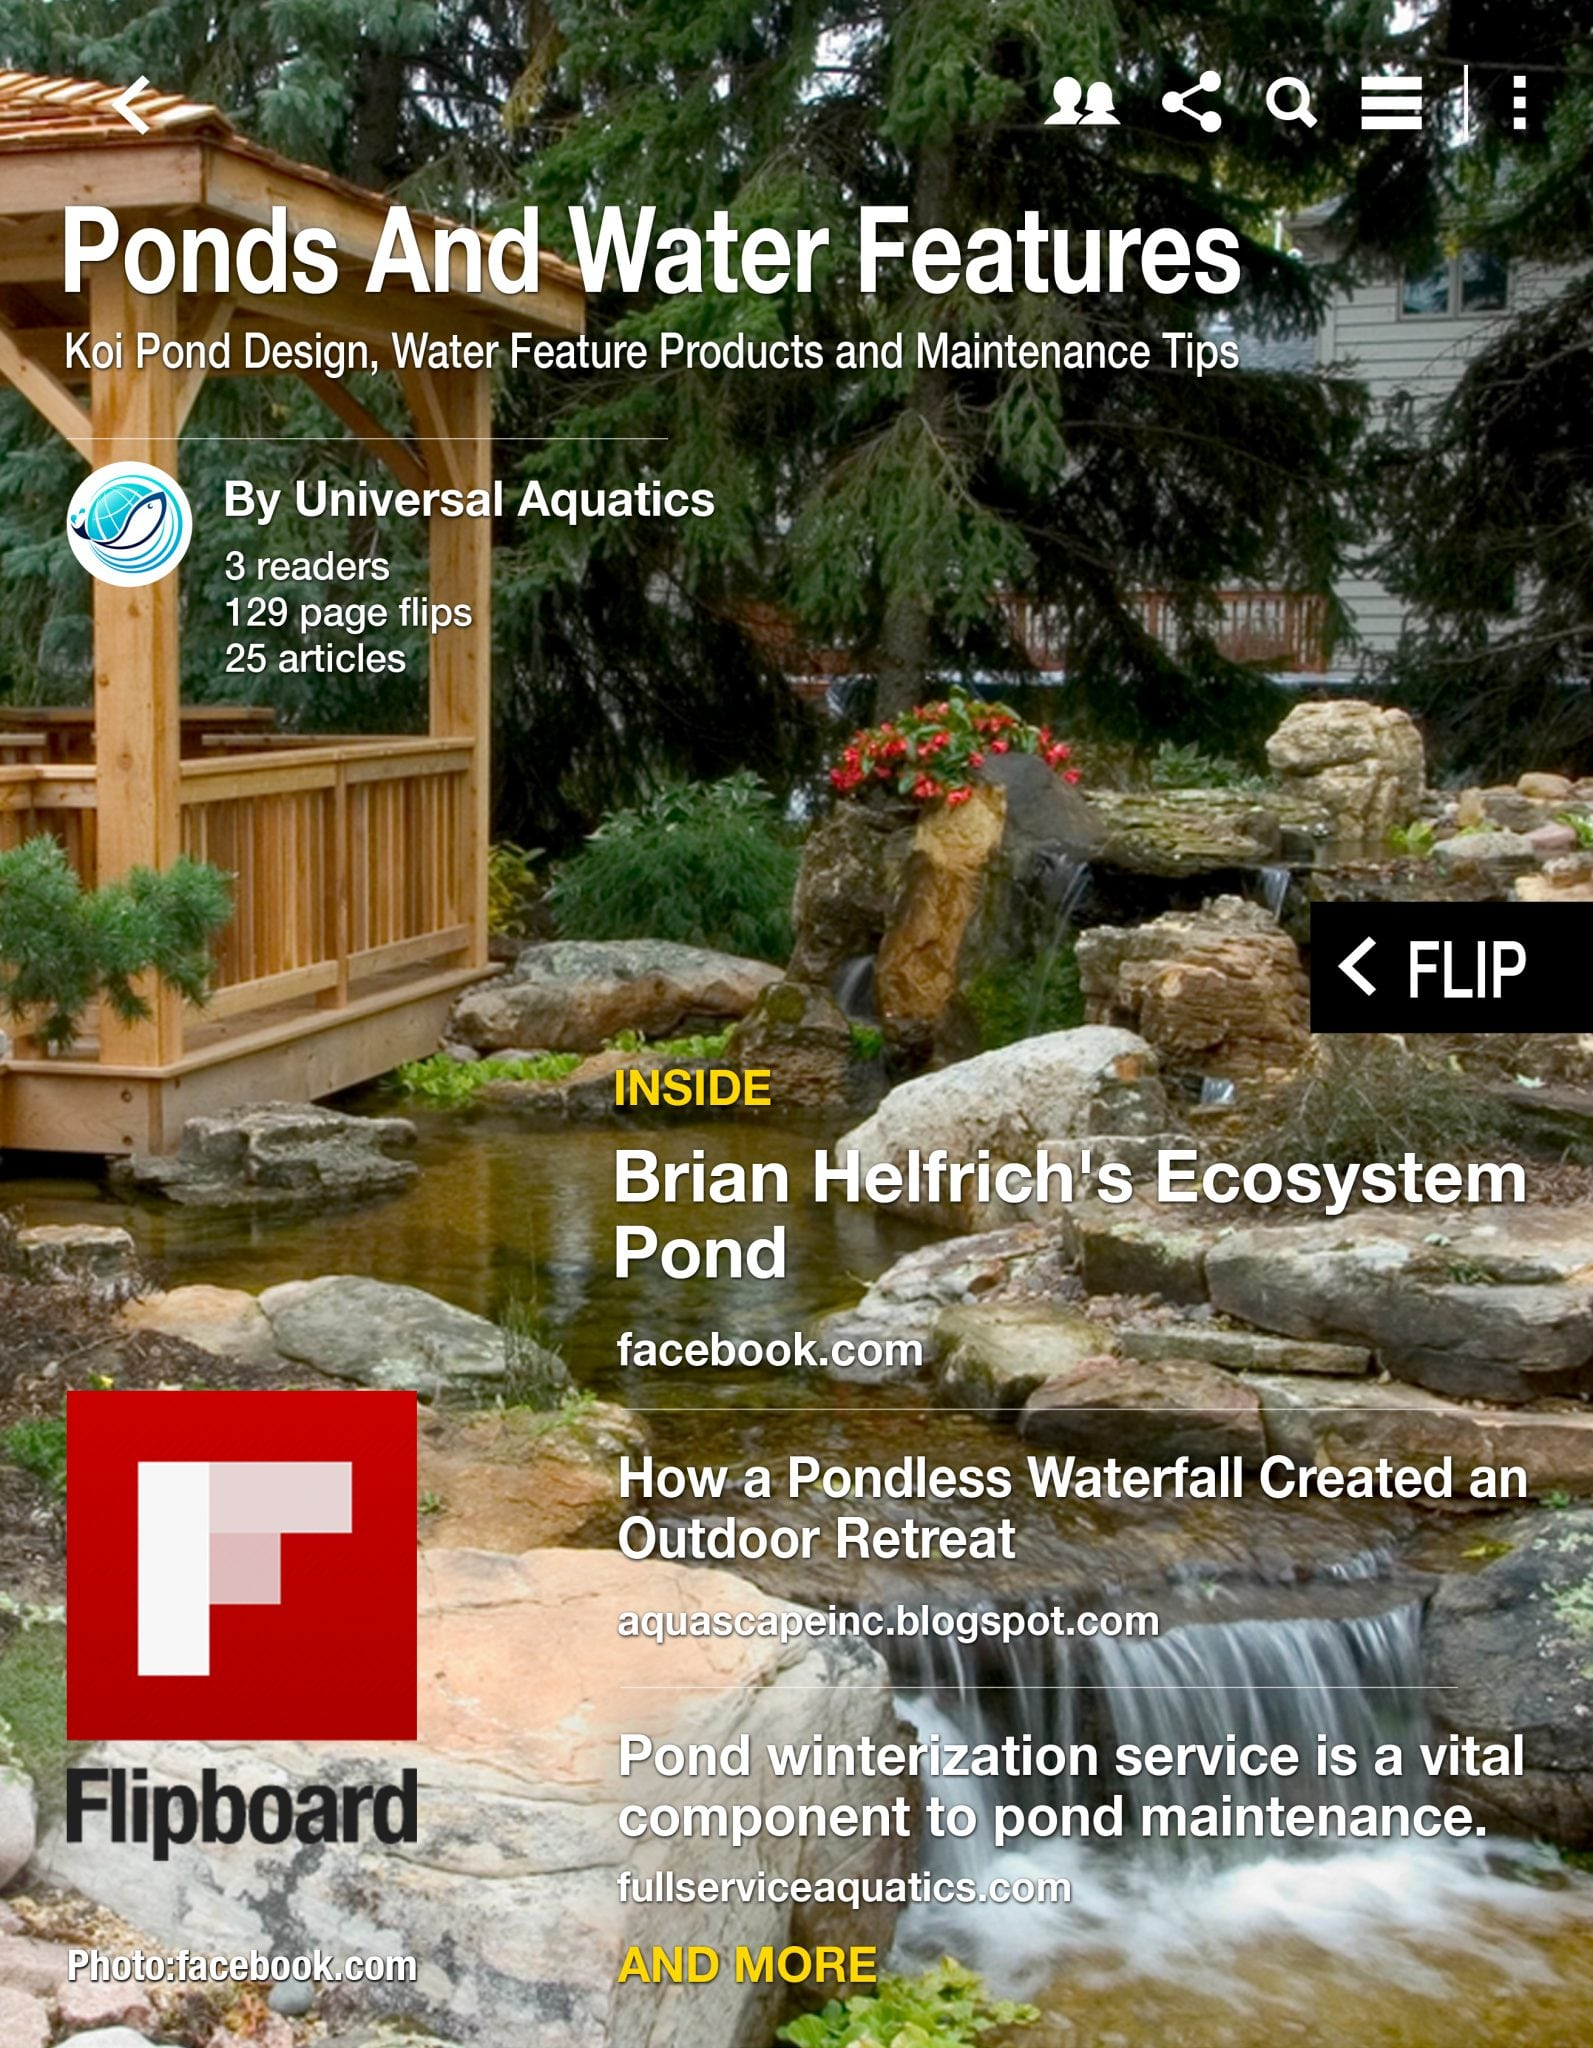 Pond & Water Feature Flip Book